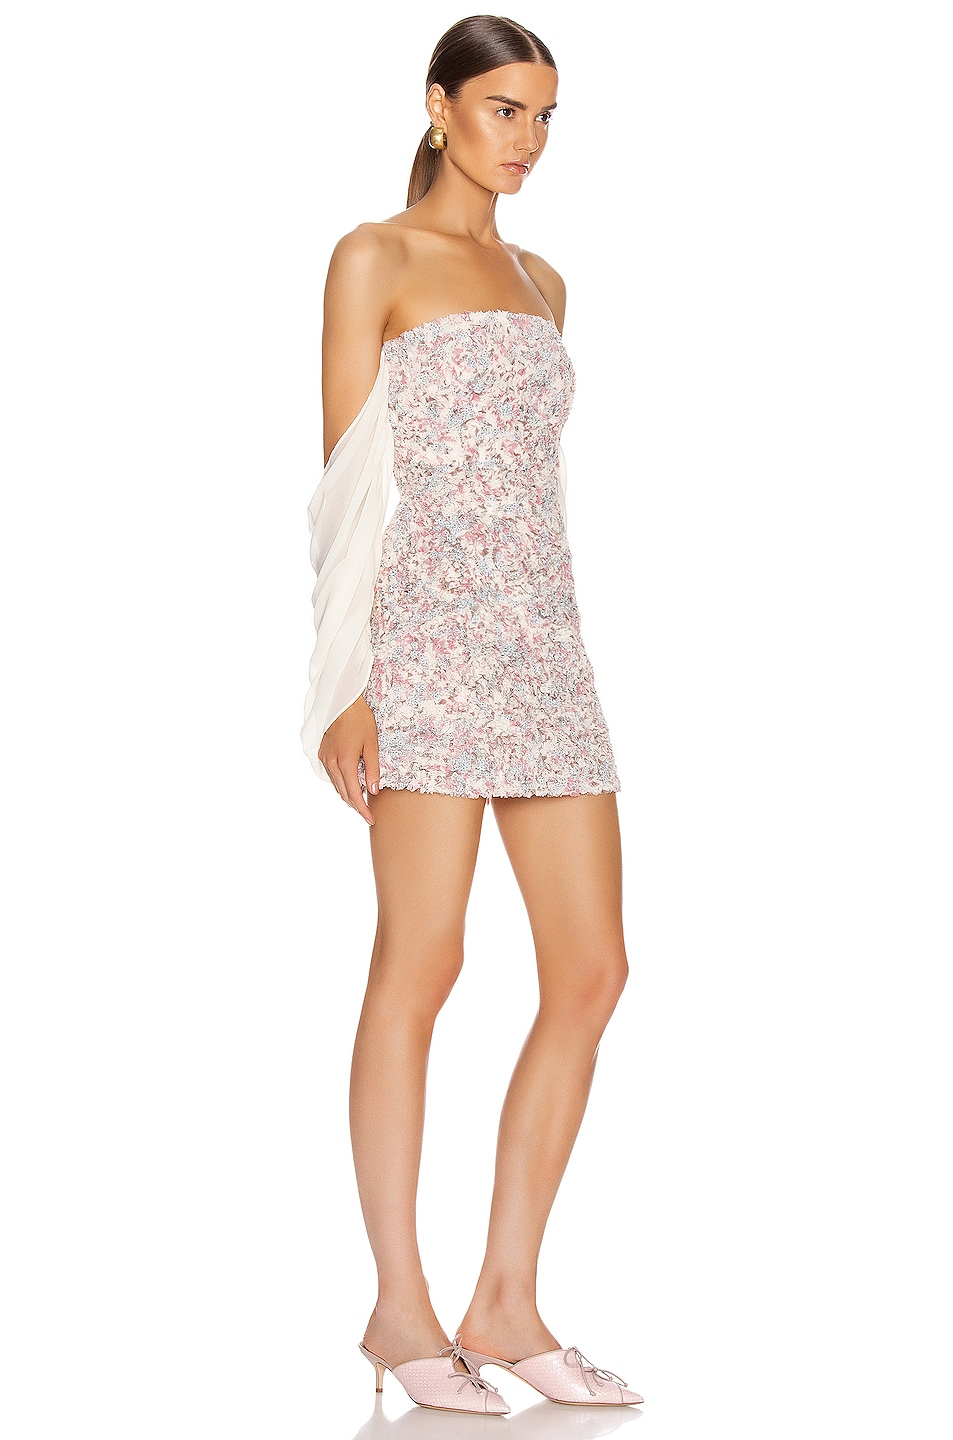 Image 2 of Atoir Chasing Highs Dress in Orchid Floral